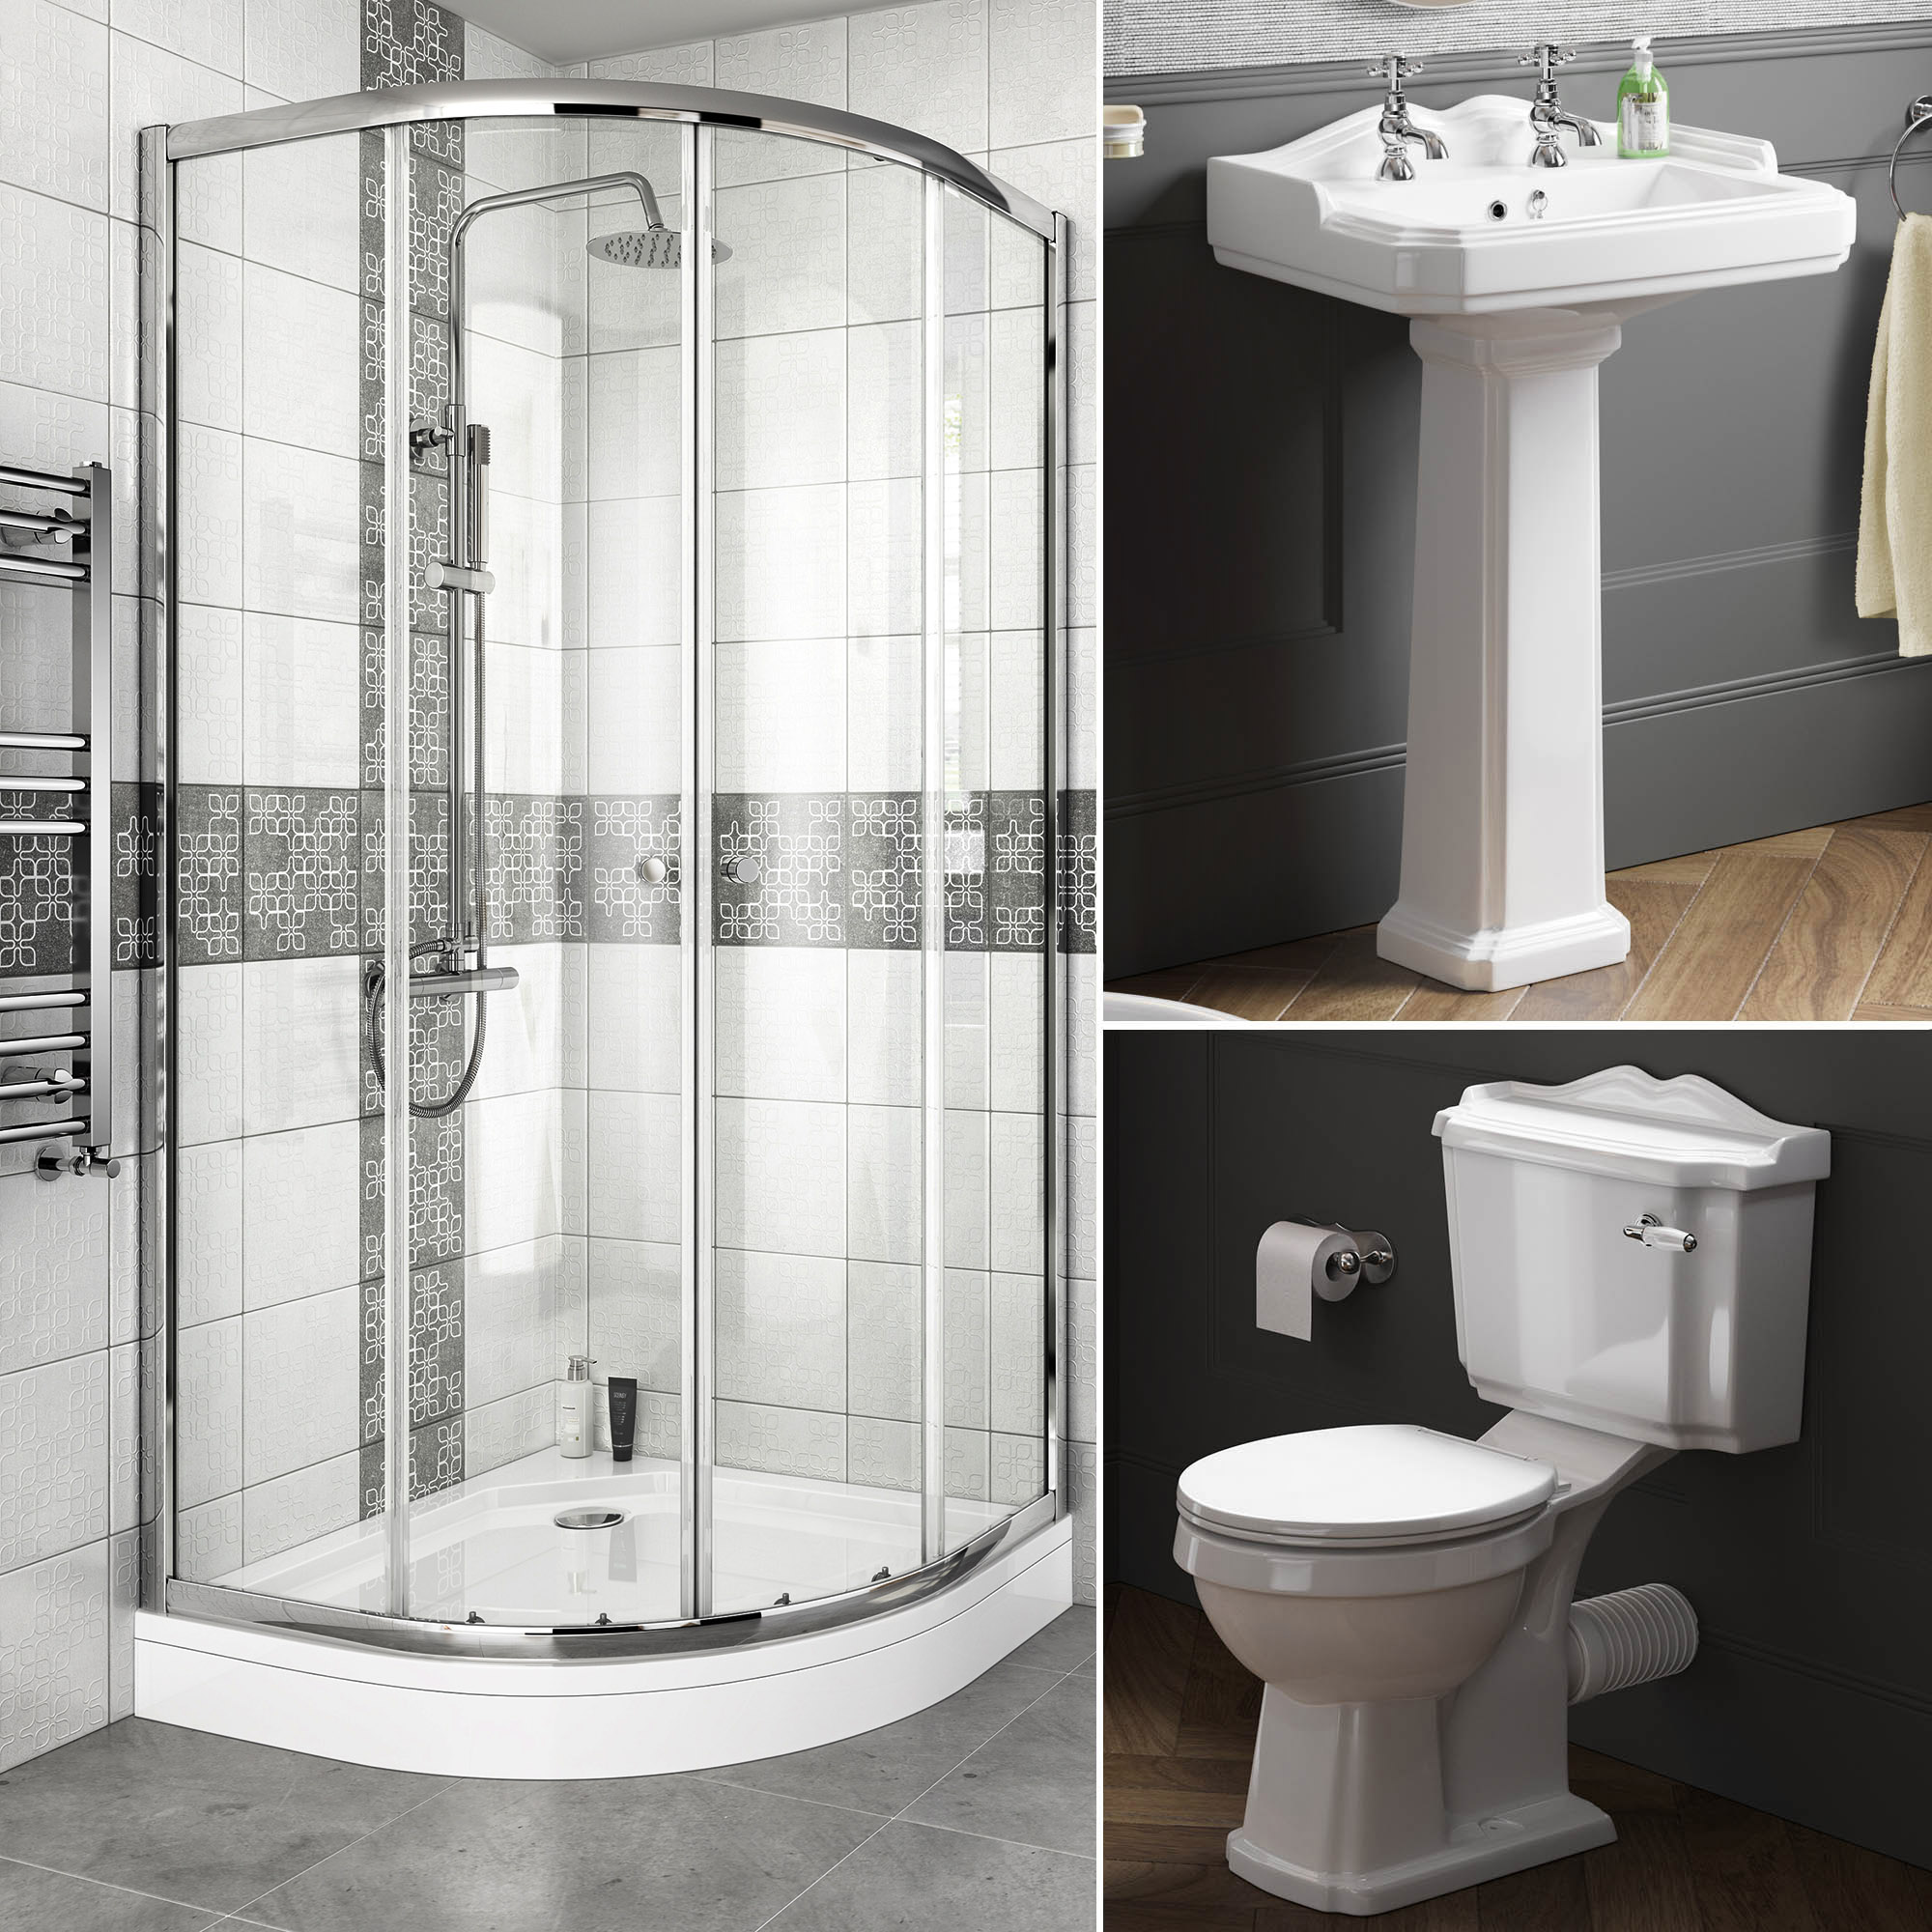 Complete Bathroom Suite Quadrant Shower Enclosure With Toilet And Basin Pedestal Ebay